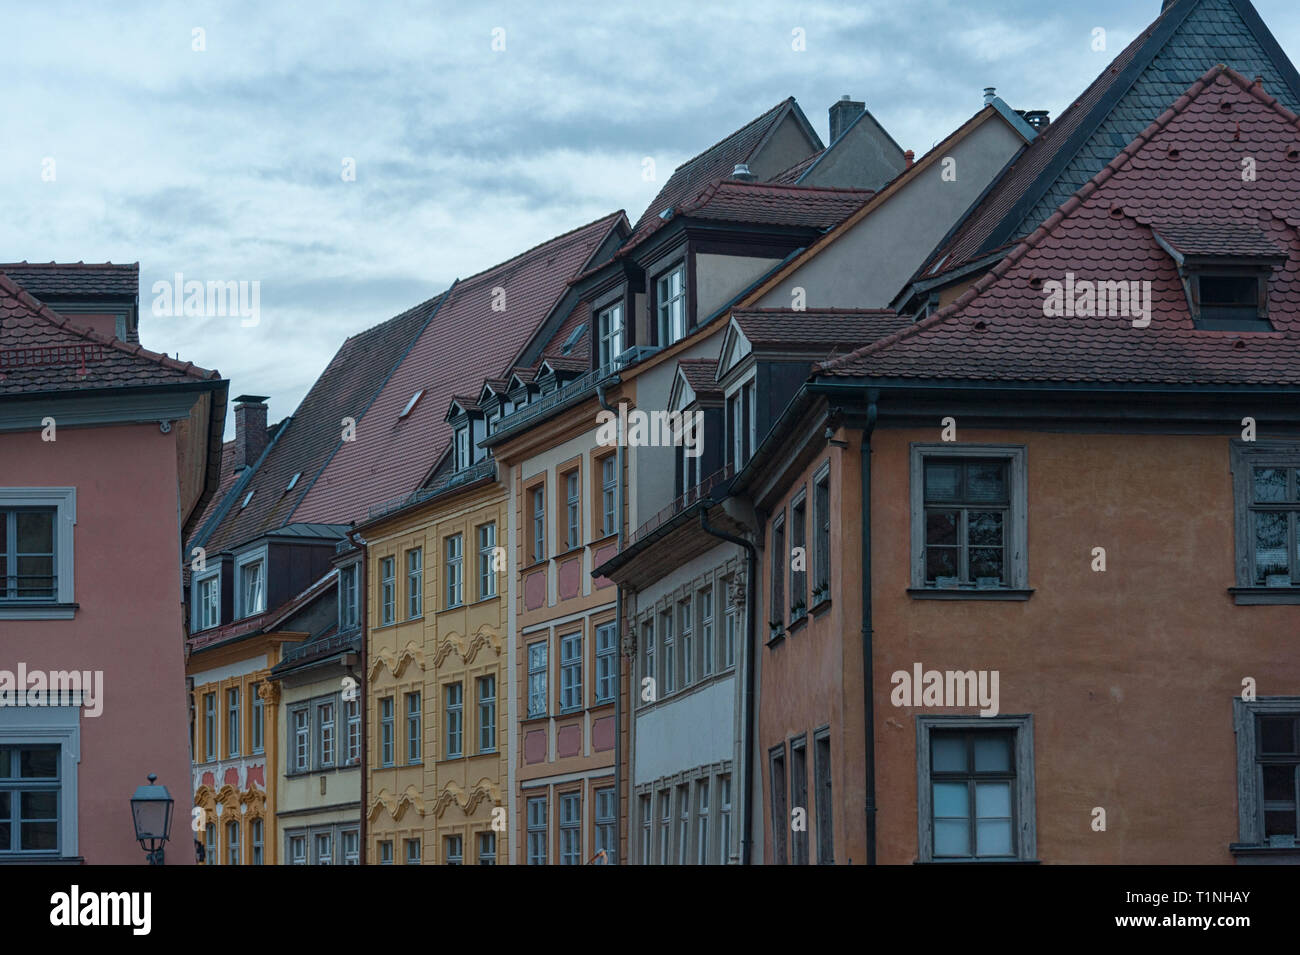 The historic old town of Bamberg with baroque architecture and iconic wood-framed houses - Bavaria, Germany - Stock Image